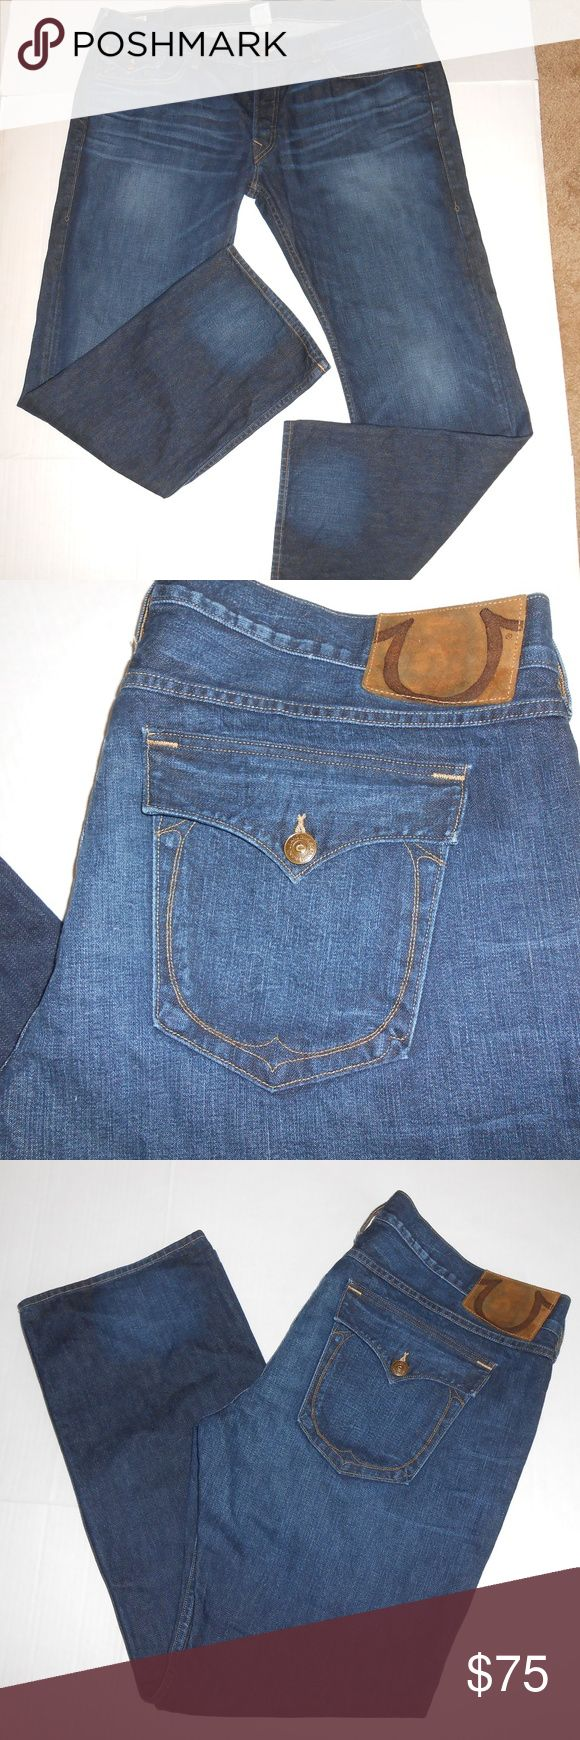 "True Religion ""Ricky""  Jeans sz 44x34 True Religion Ricky Boot Cut Jeans sz 44x34. These jeans are pre-owned and are in great condition. Real nice jeans. Such a great deal on these great jeans. Measurements Waist: 23.5"" across Inseam: 33.5"" True Religion Jeans Straight"